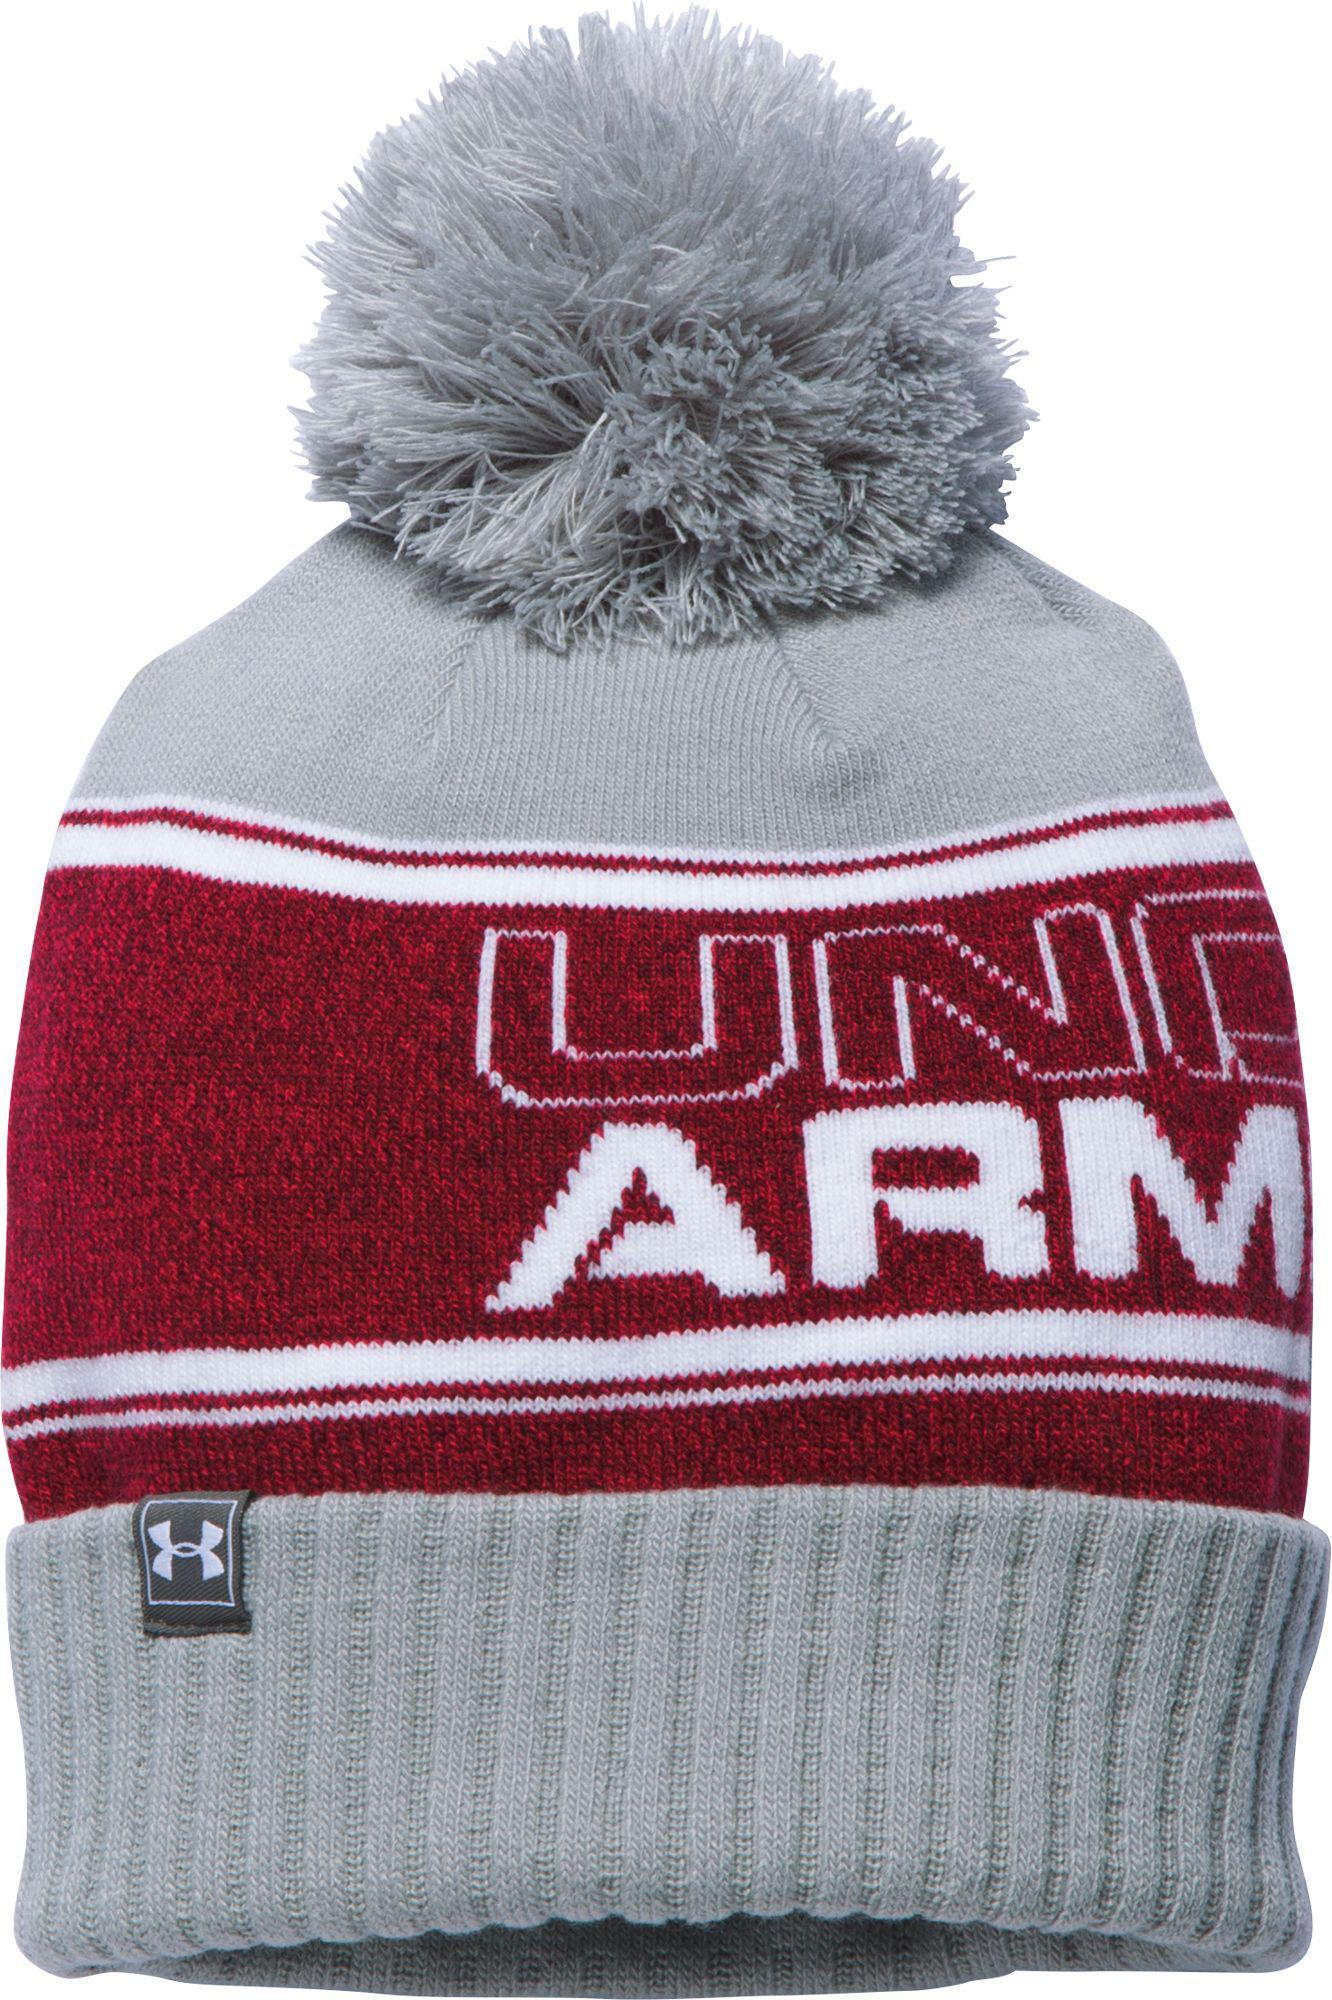 5e314f75ed Lyst - Under Armour Pom Beanie in Red for Men